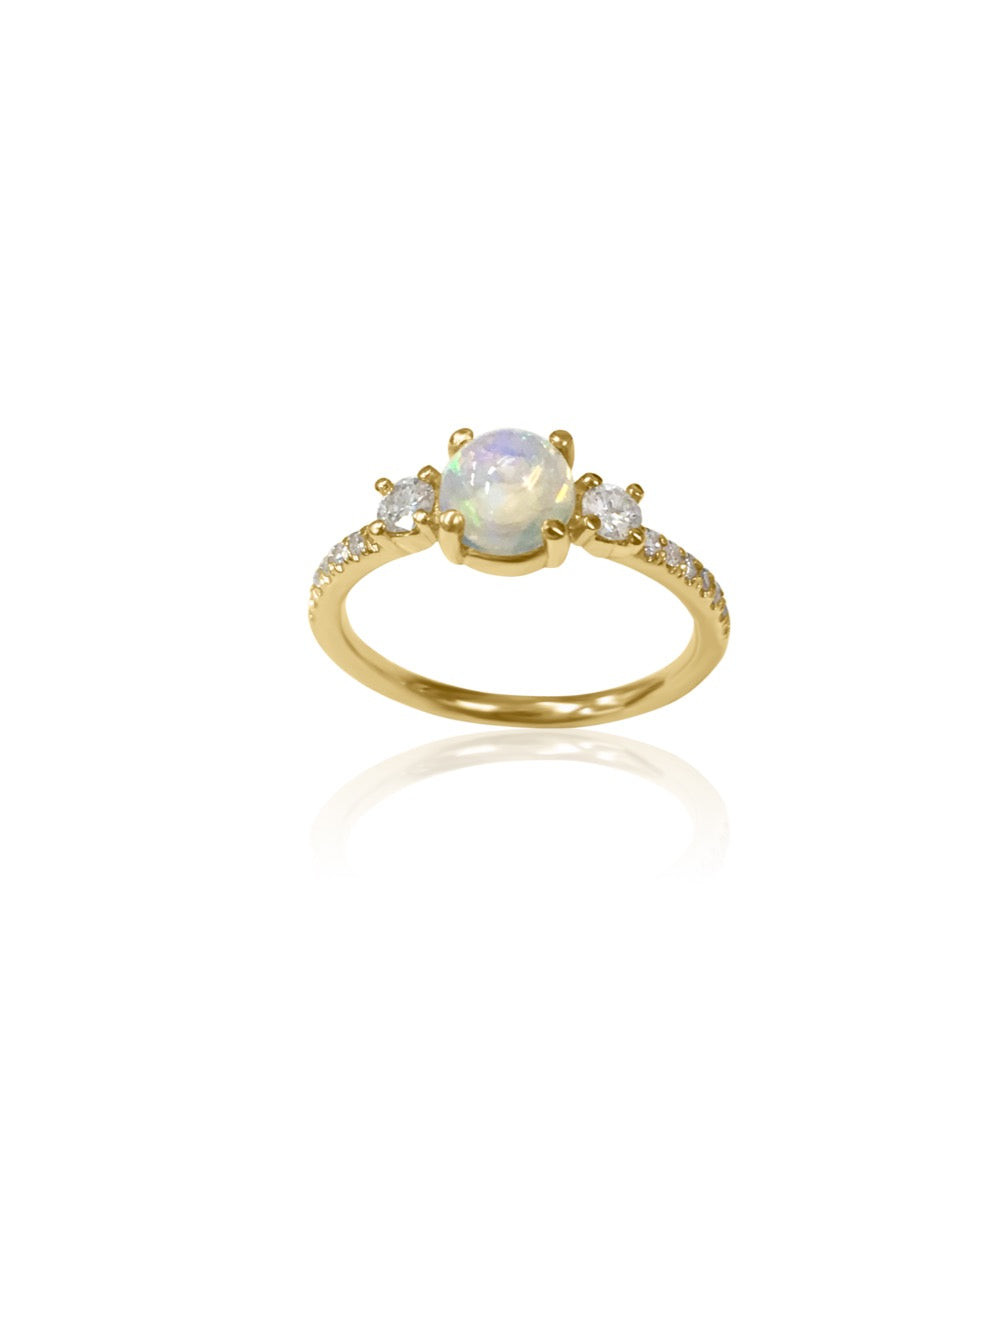 14k Gold Diamond & Opal Ring